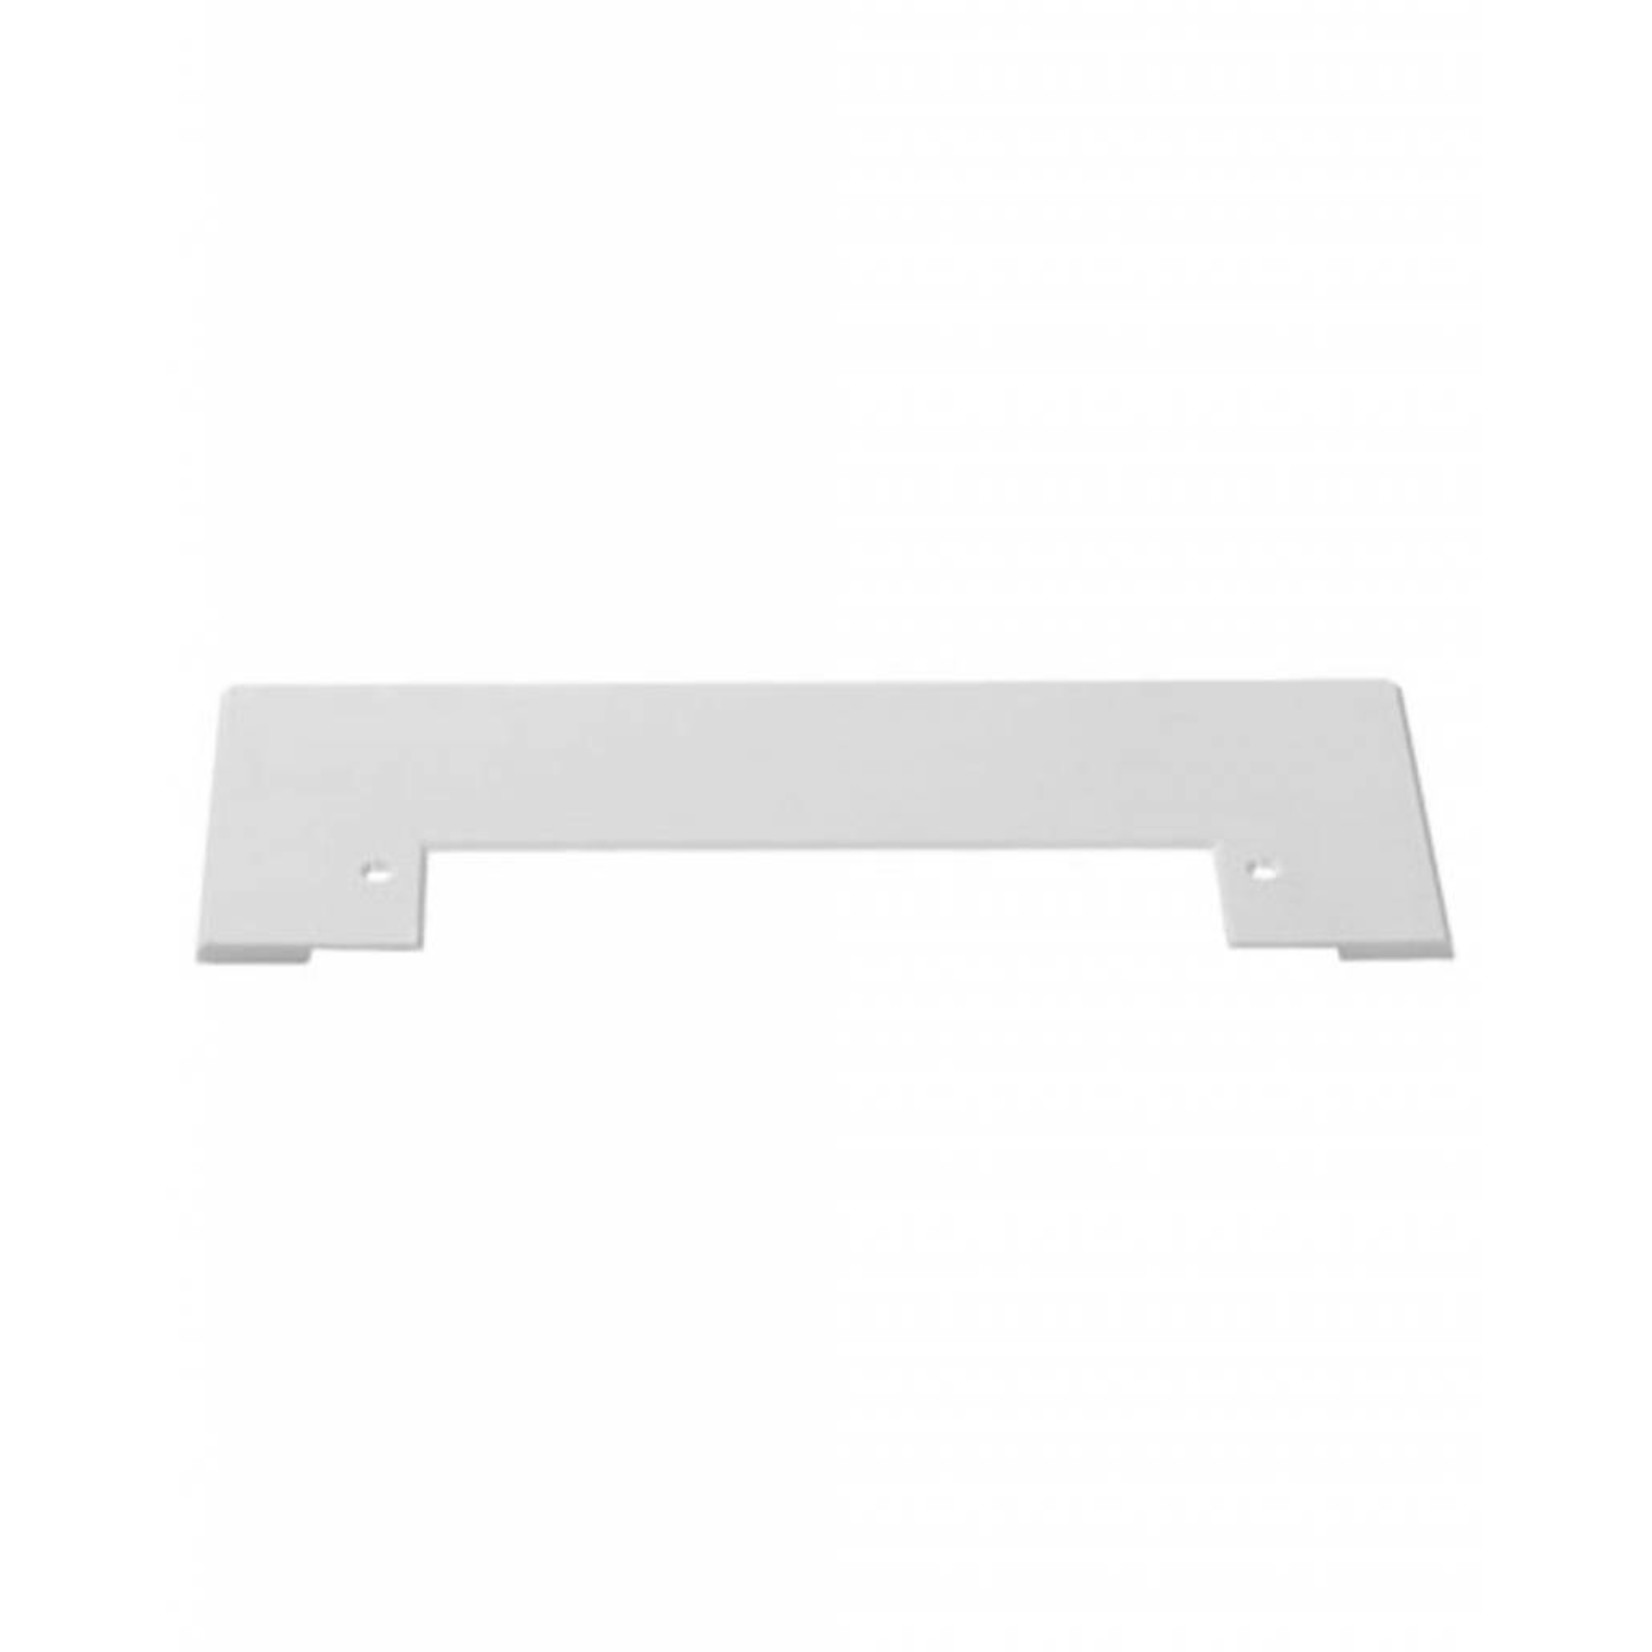 BEAM Central Vacuum VacPan Trim Plate - White